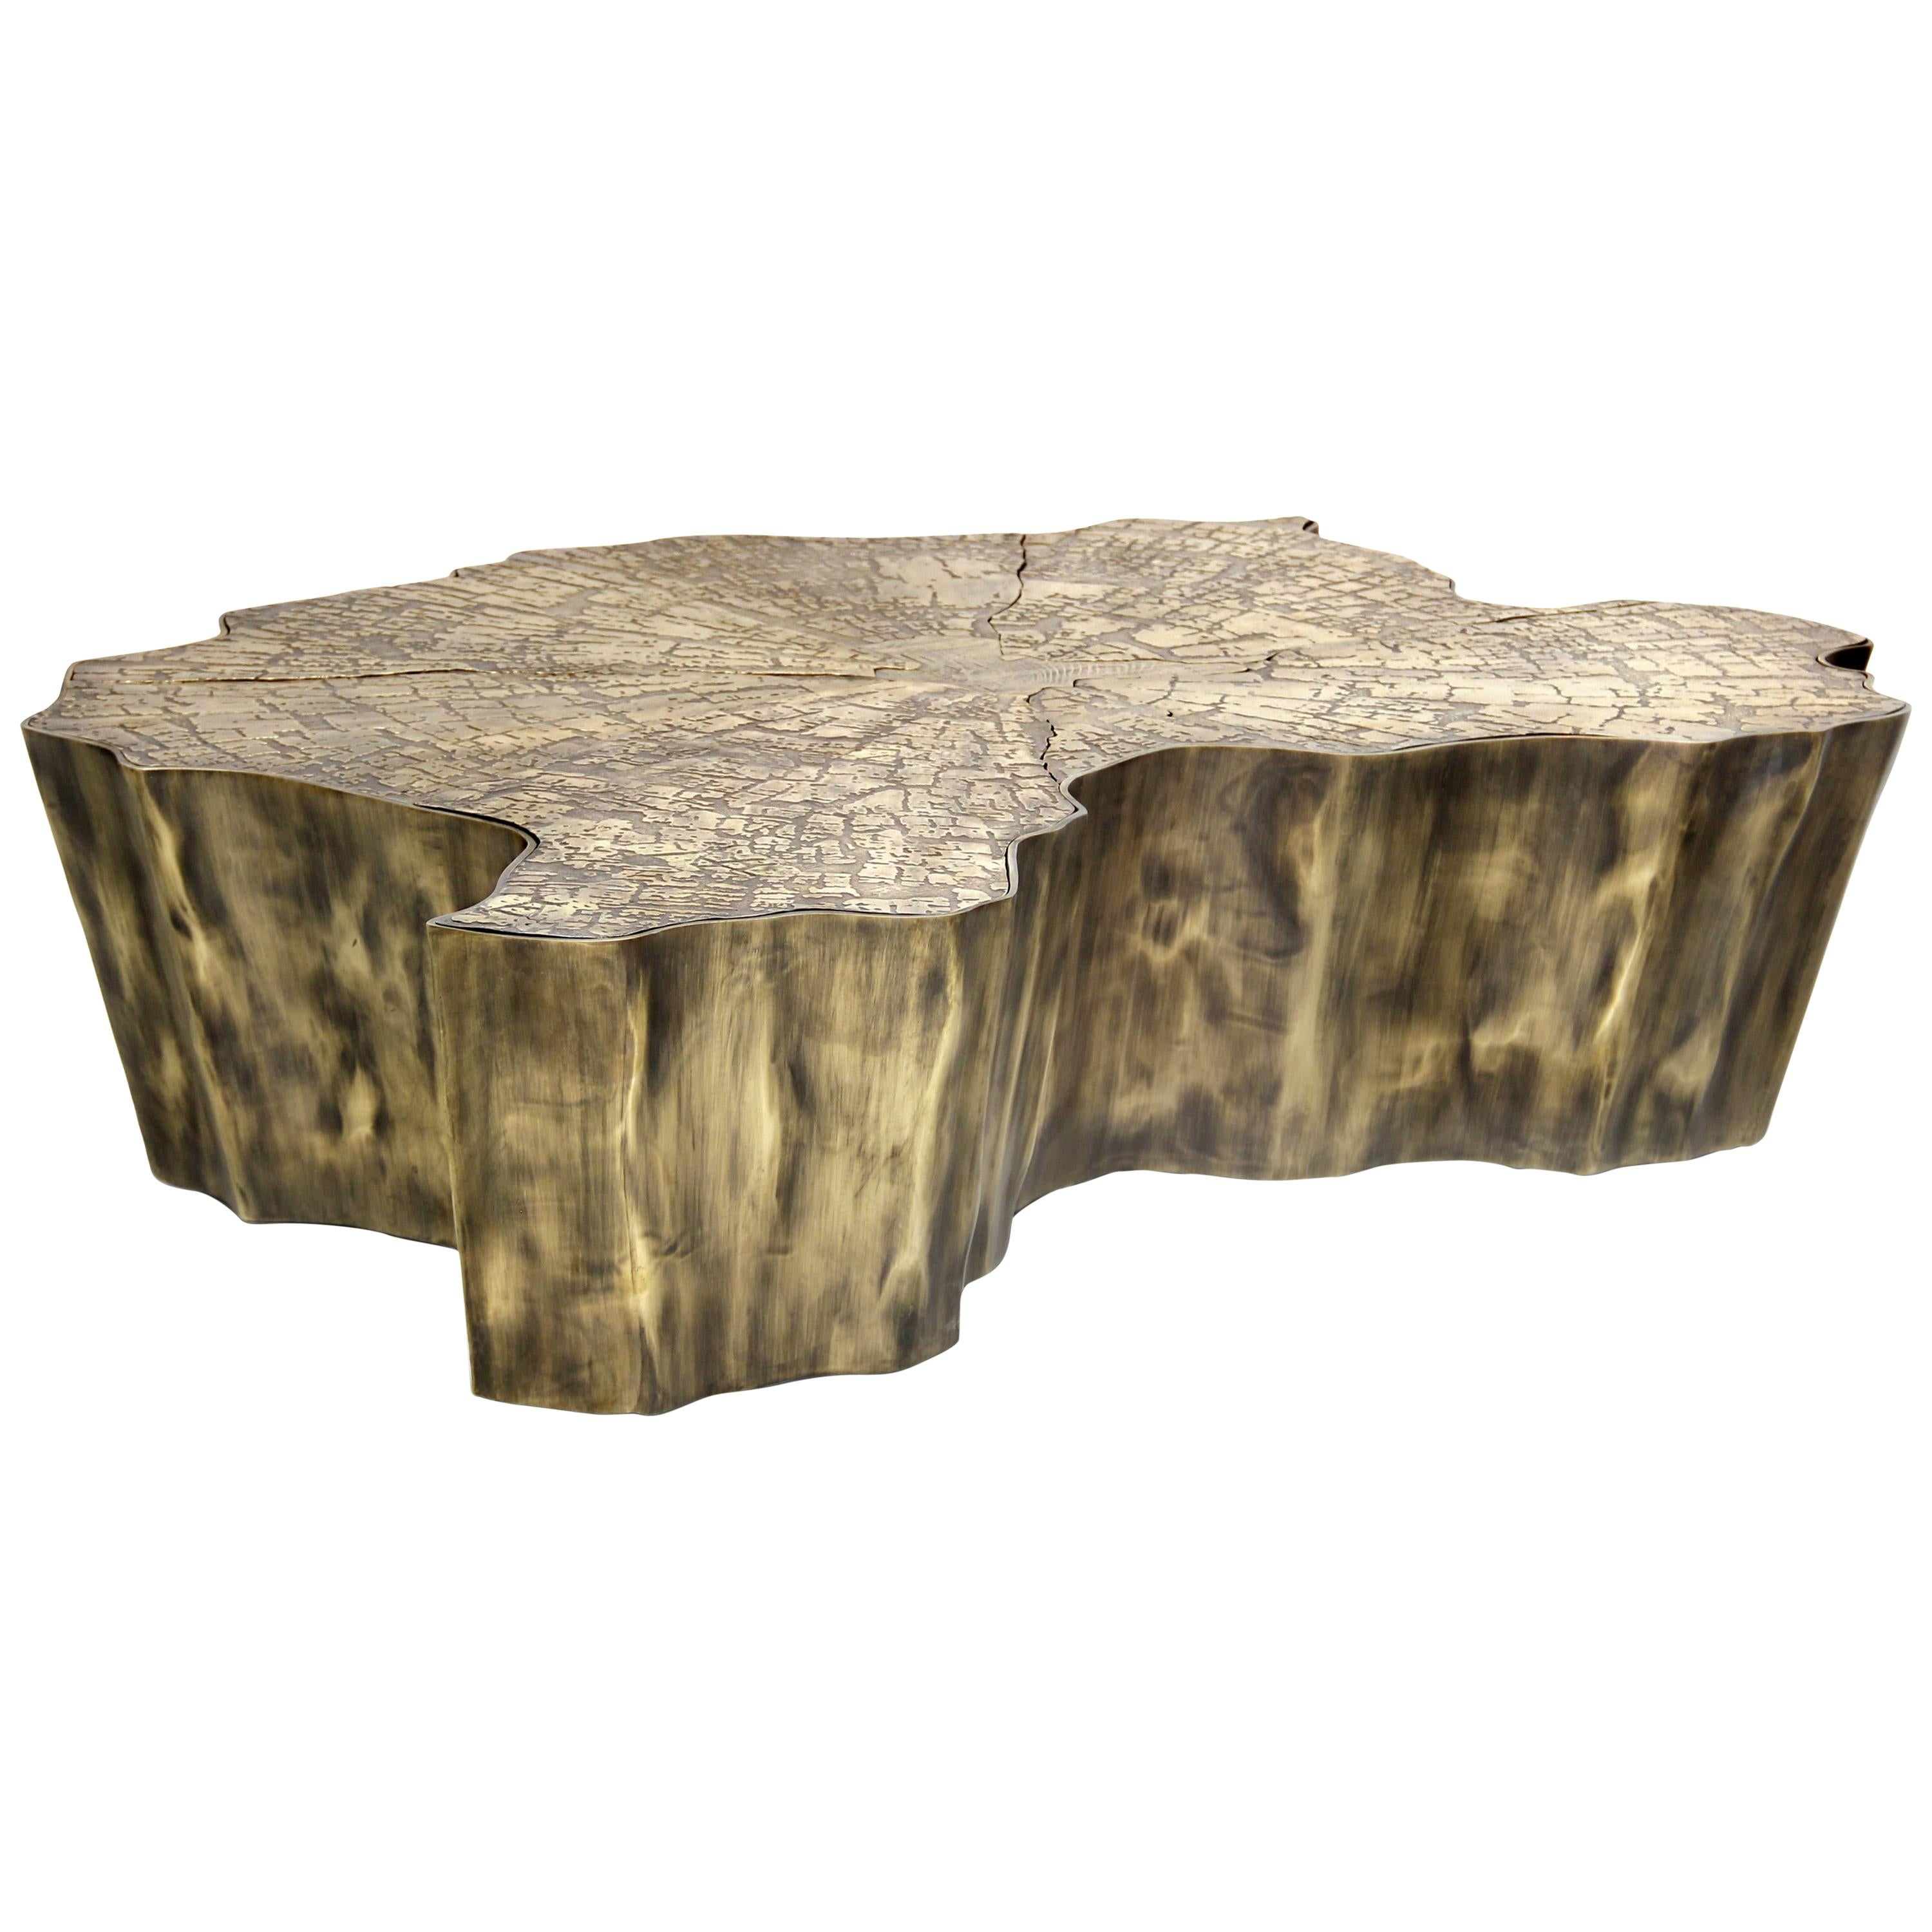 Eden Small Center Table in Patina Casted Brass